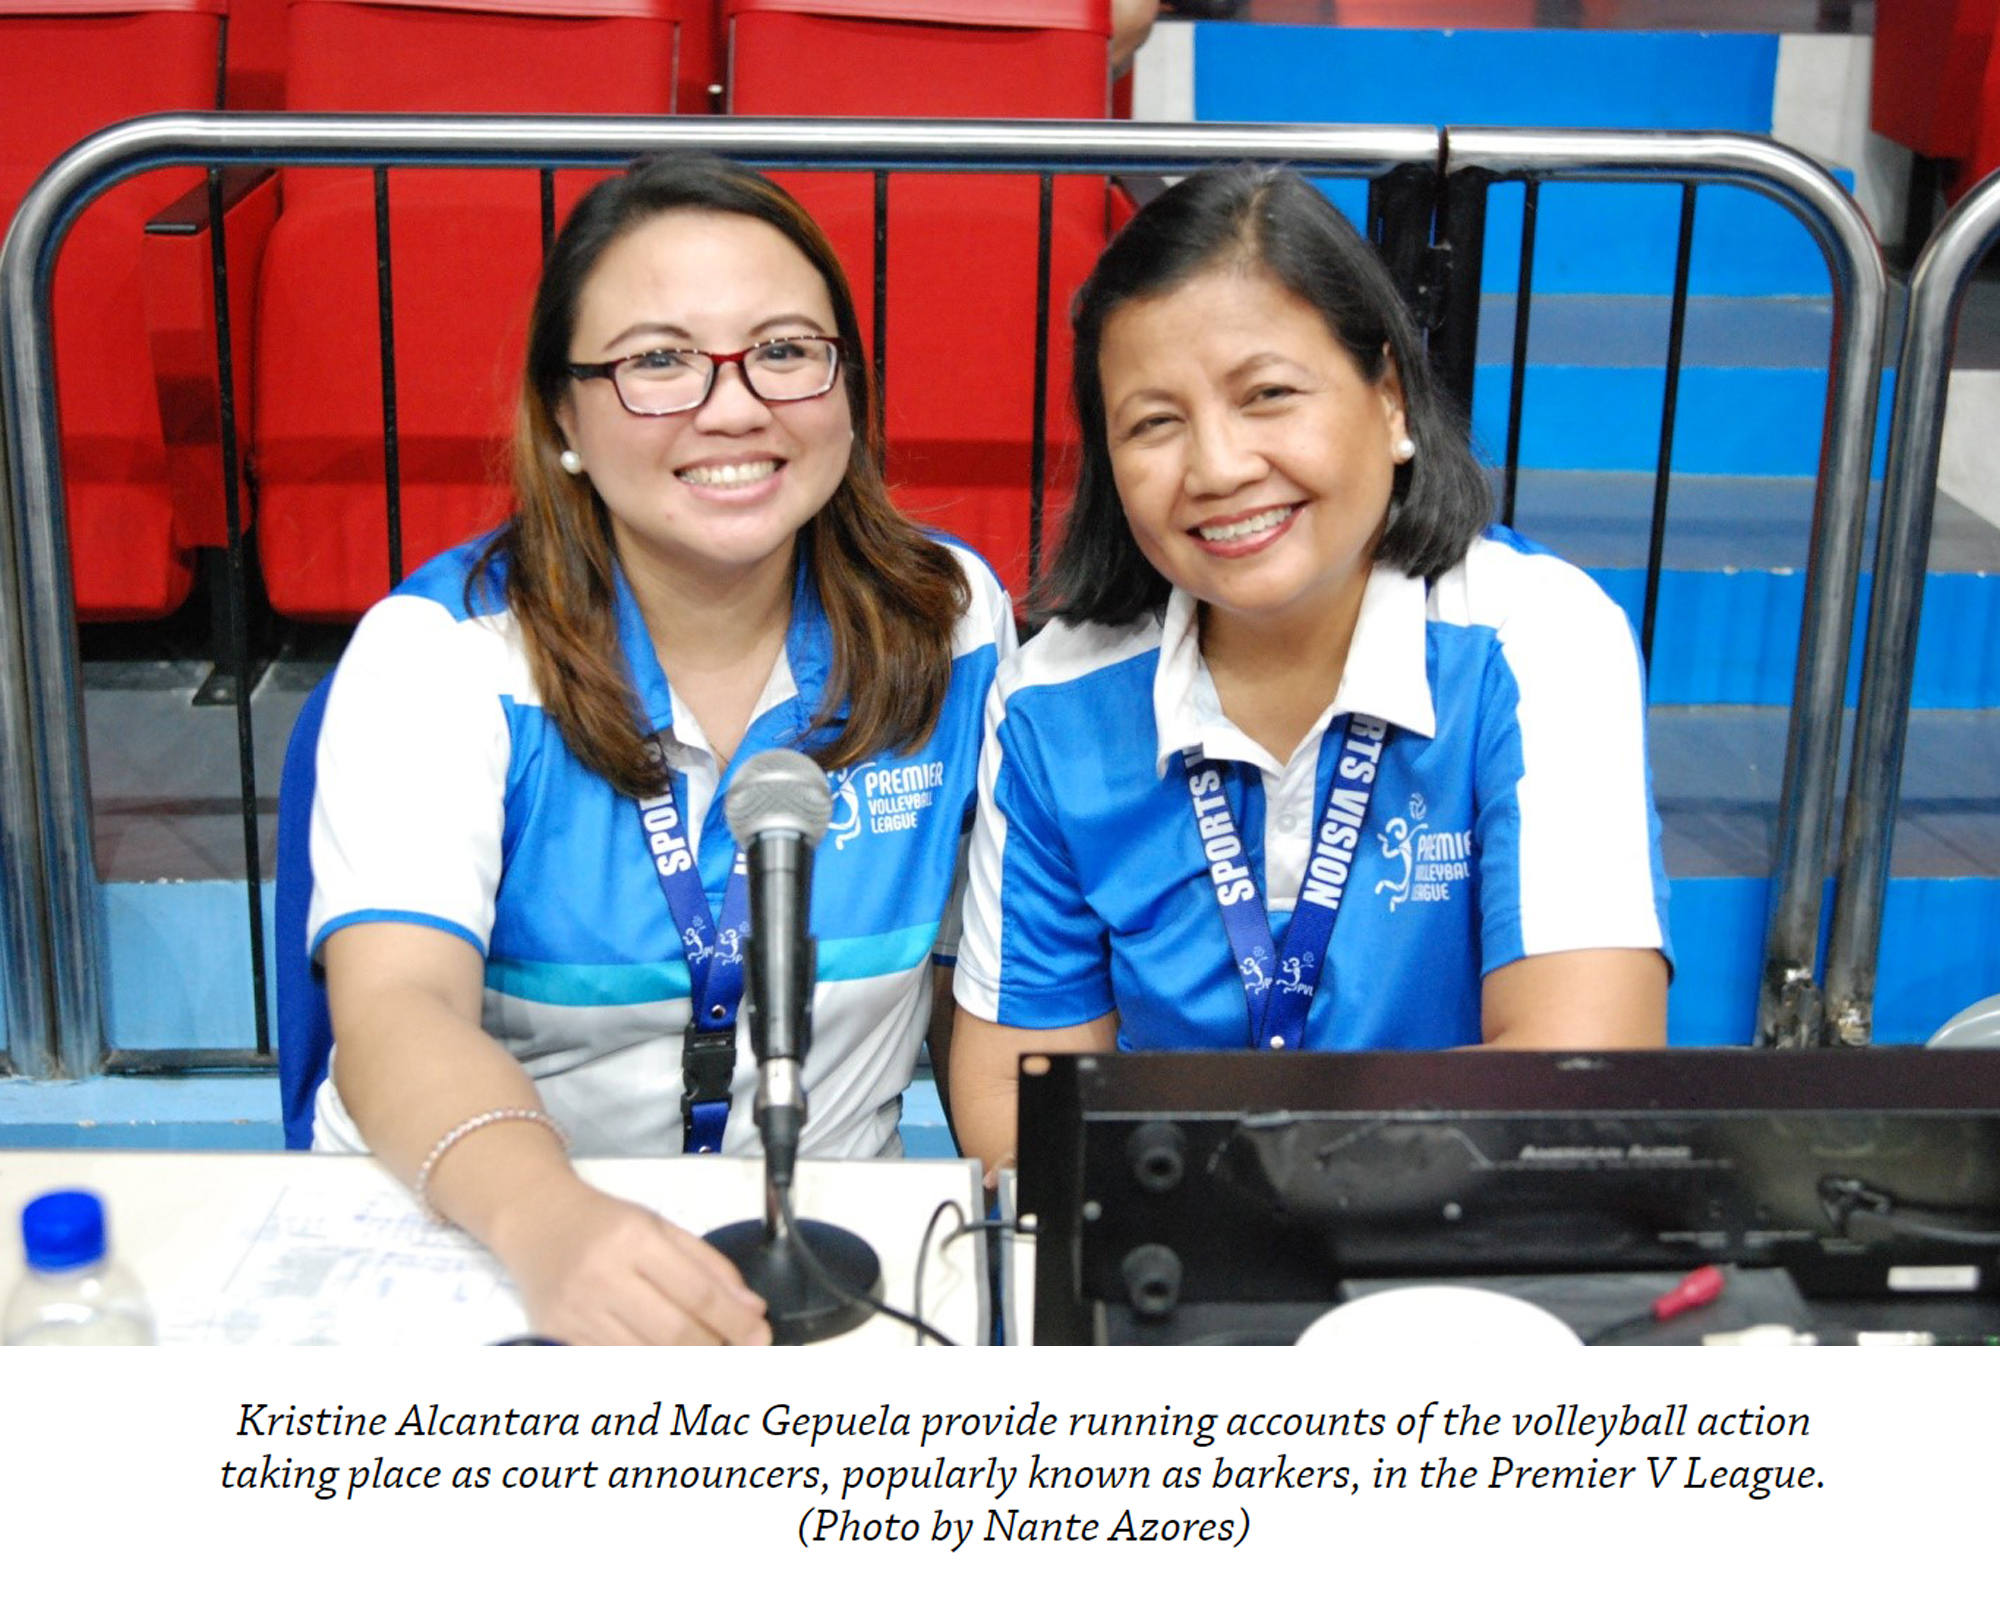 Mac and Kris: A pair of sweet-voiced court announcers | ABS_CBN Sports Online